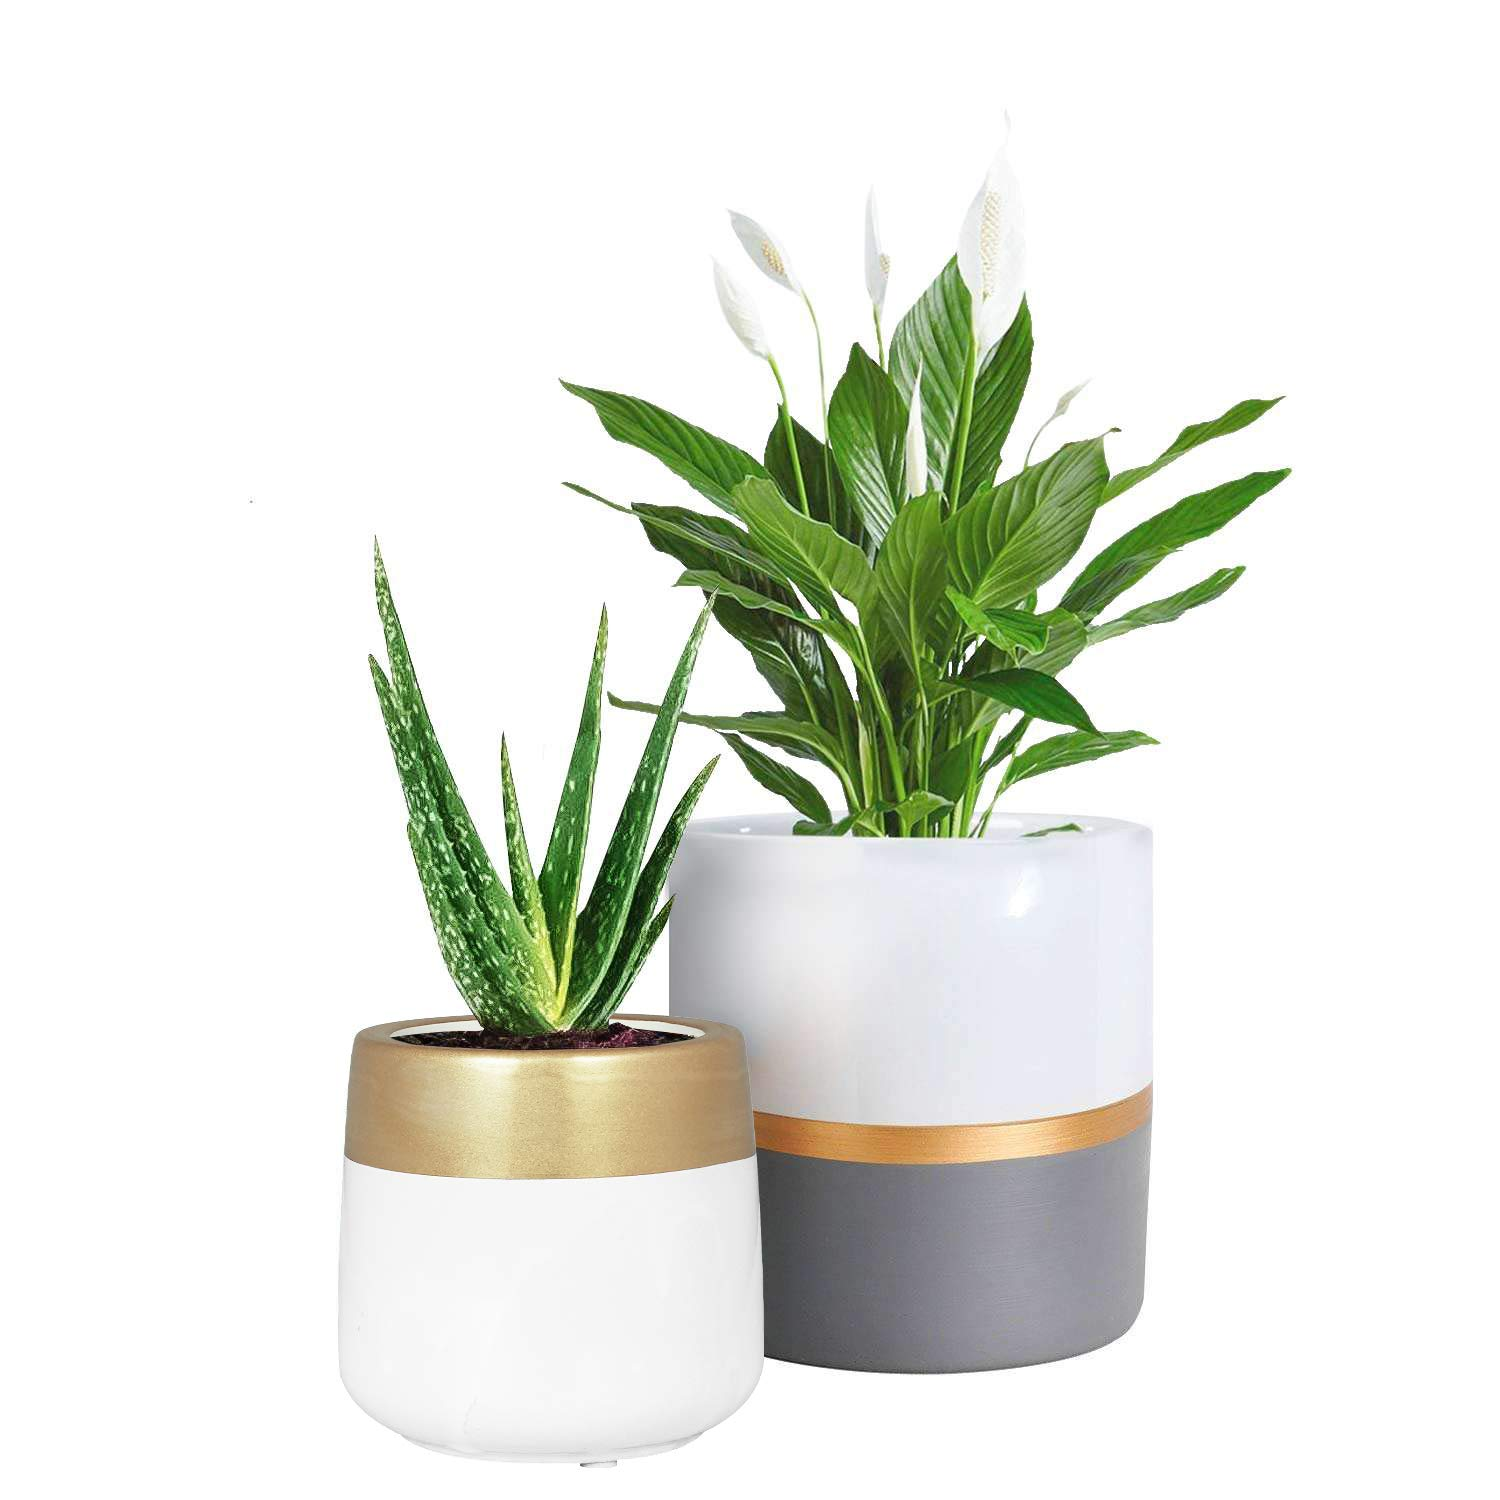 TIMEYARD Ceramic Planter Pots Indoor with Drainage Hole, Set of 2 Flower Pots Cylinder Containers with Gold and Grey Painting Modern Home Garden Decor